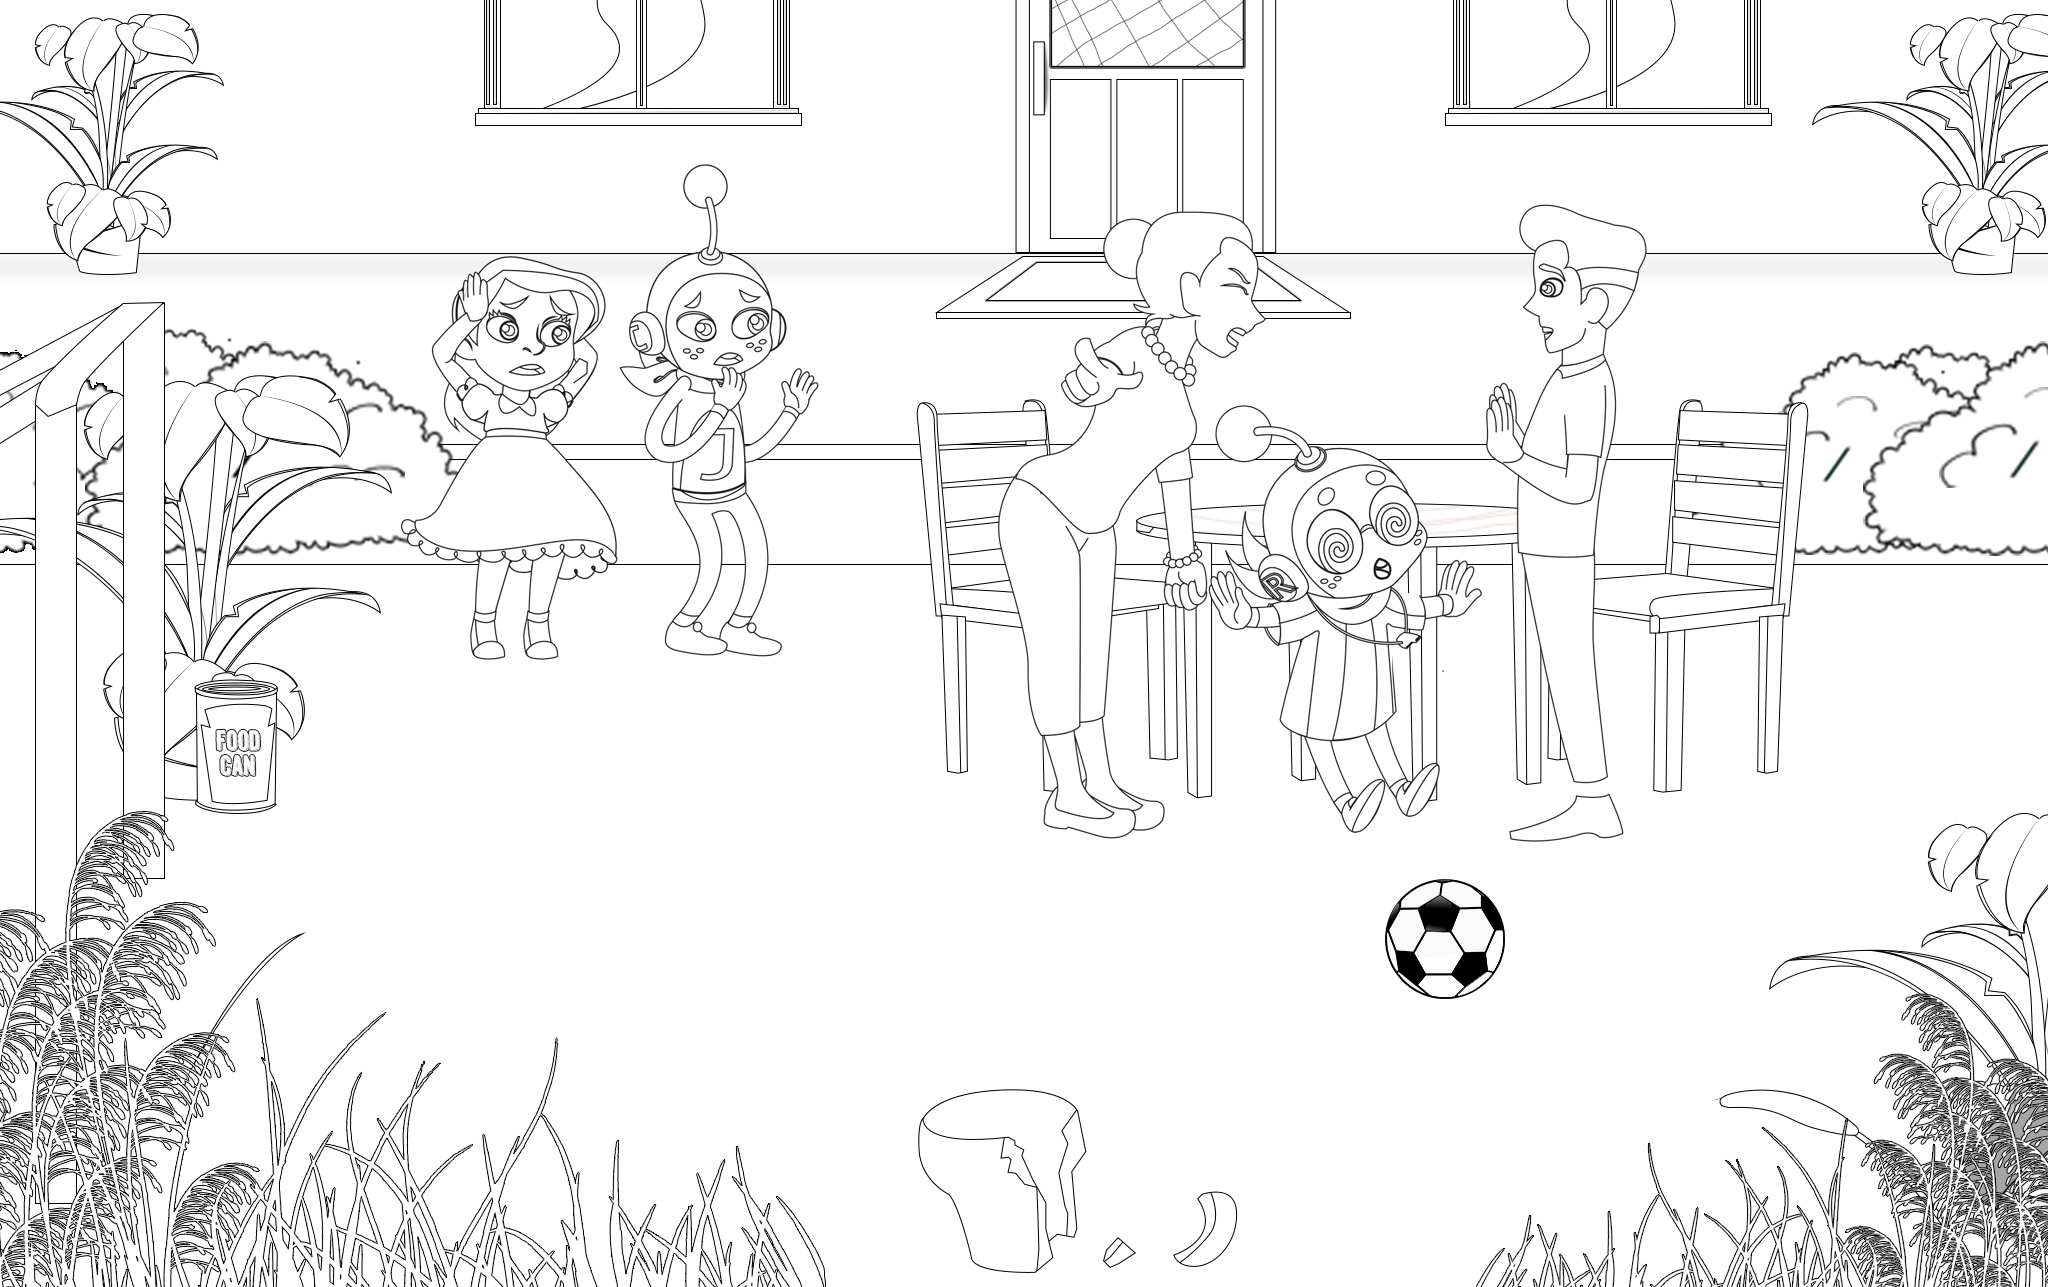 coloring pages articles of organization - photo#4